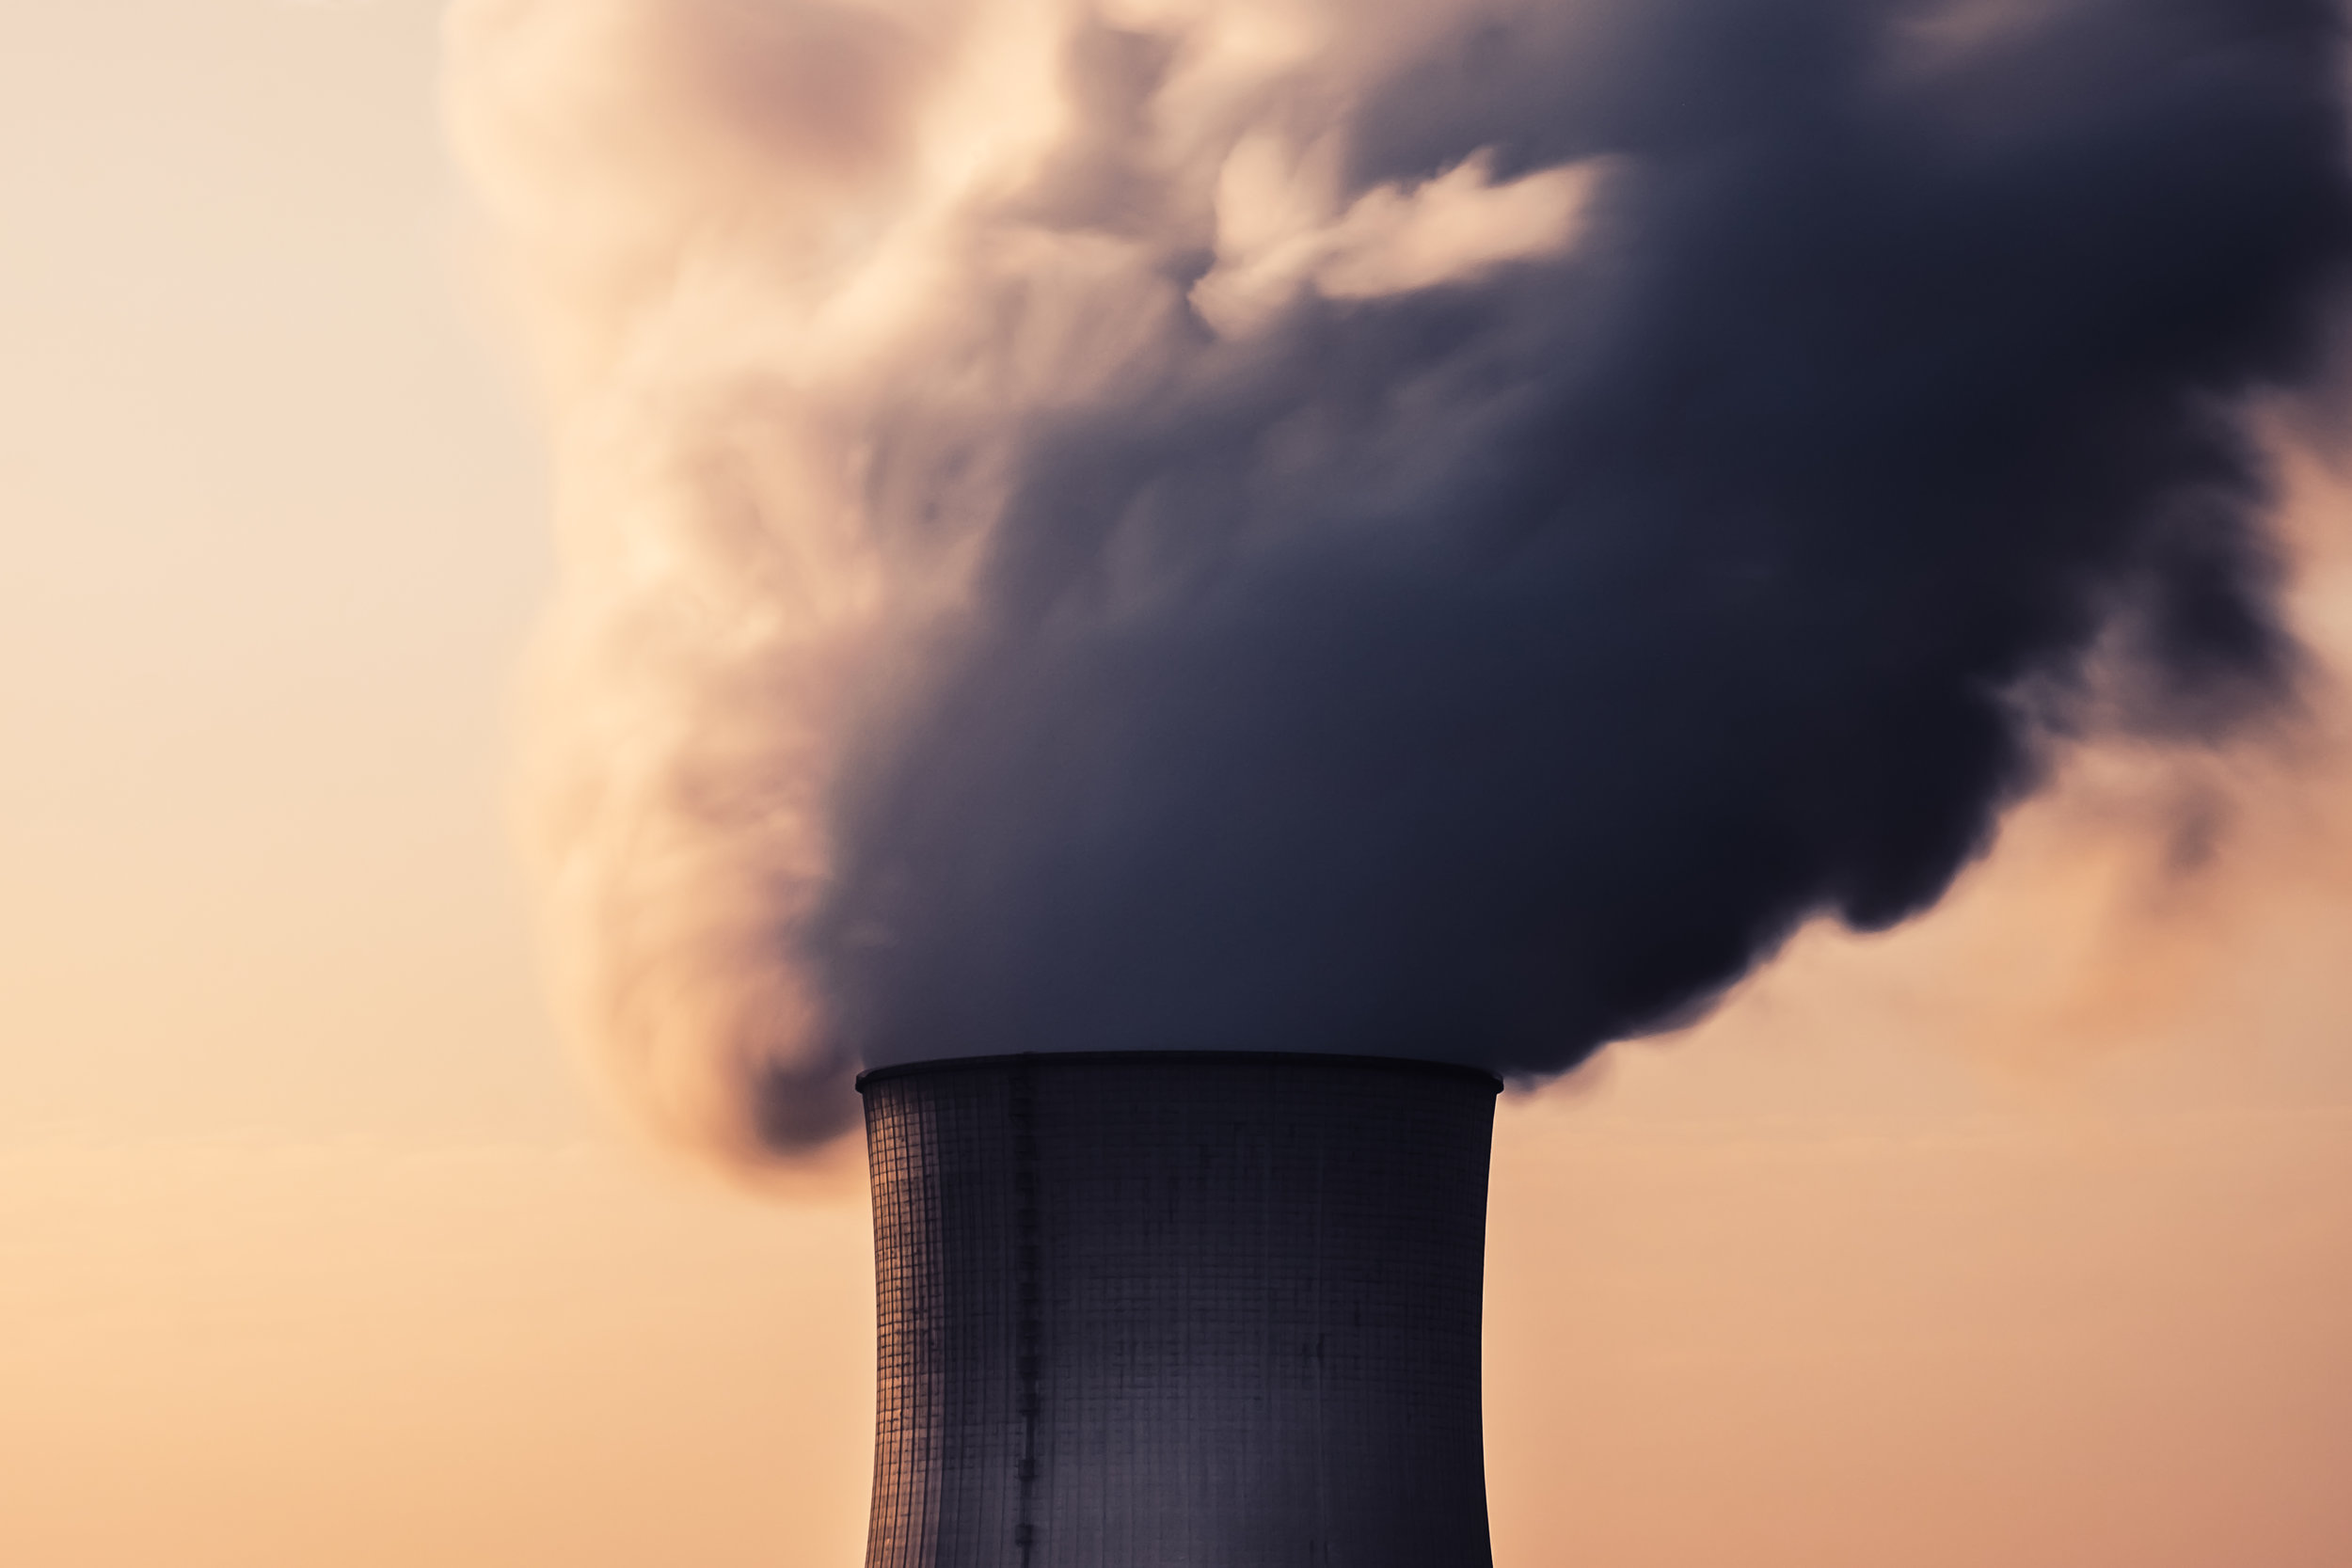 Clean Air Act (CAA) - Major provisions and updates